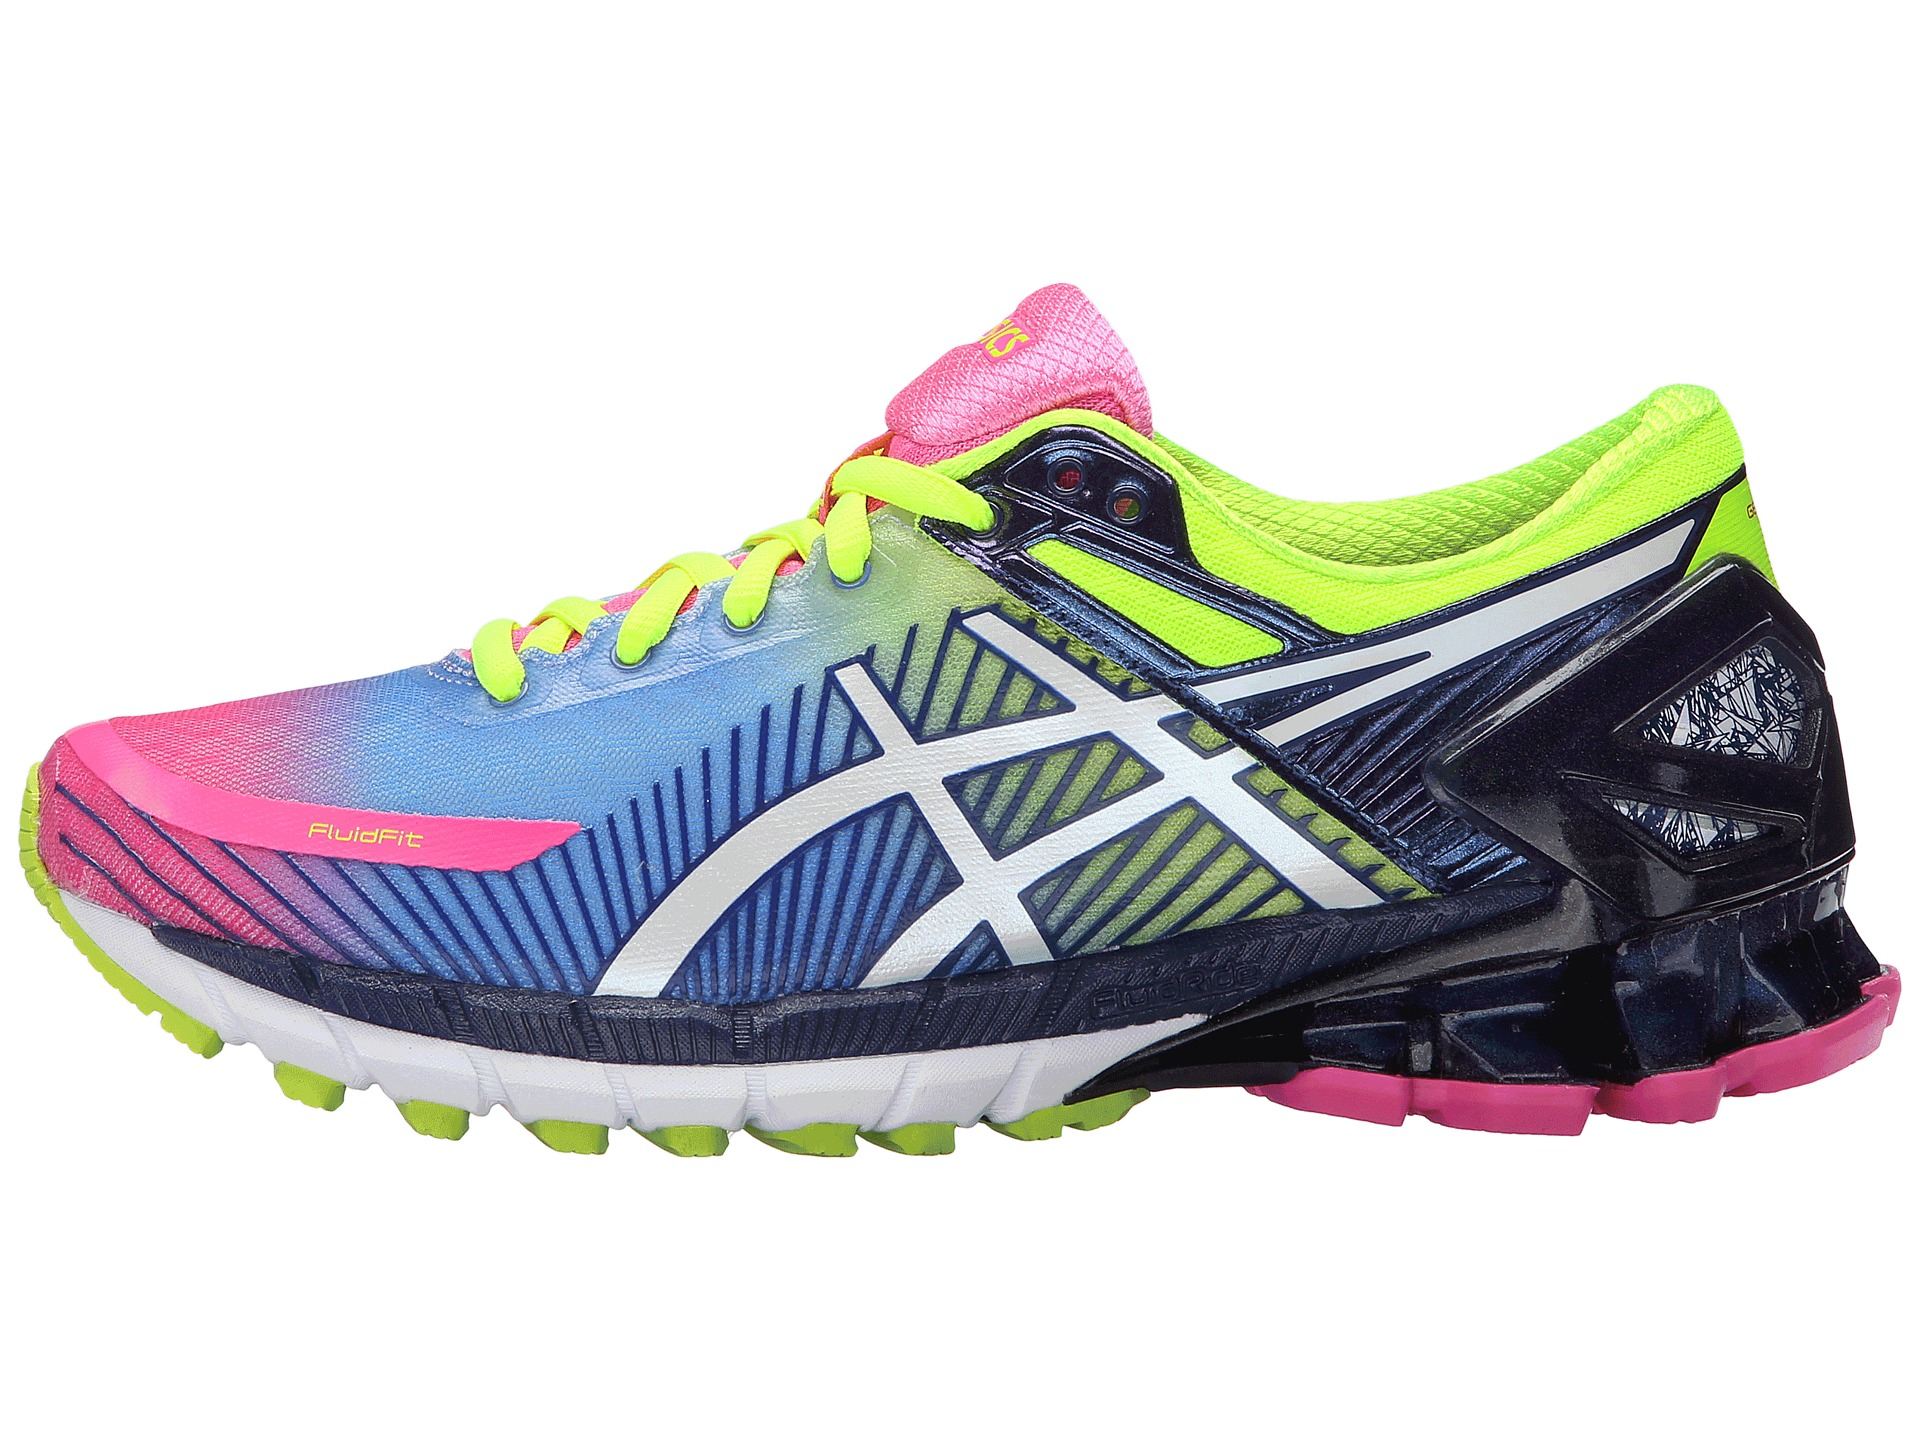 asics gel kinsei 6 hot pink white flash yellow 1 zappos. Black Bedroom Furniture Sets. Home Design Ideas